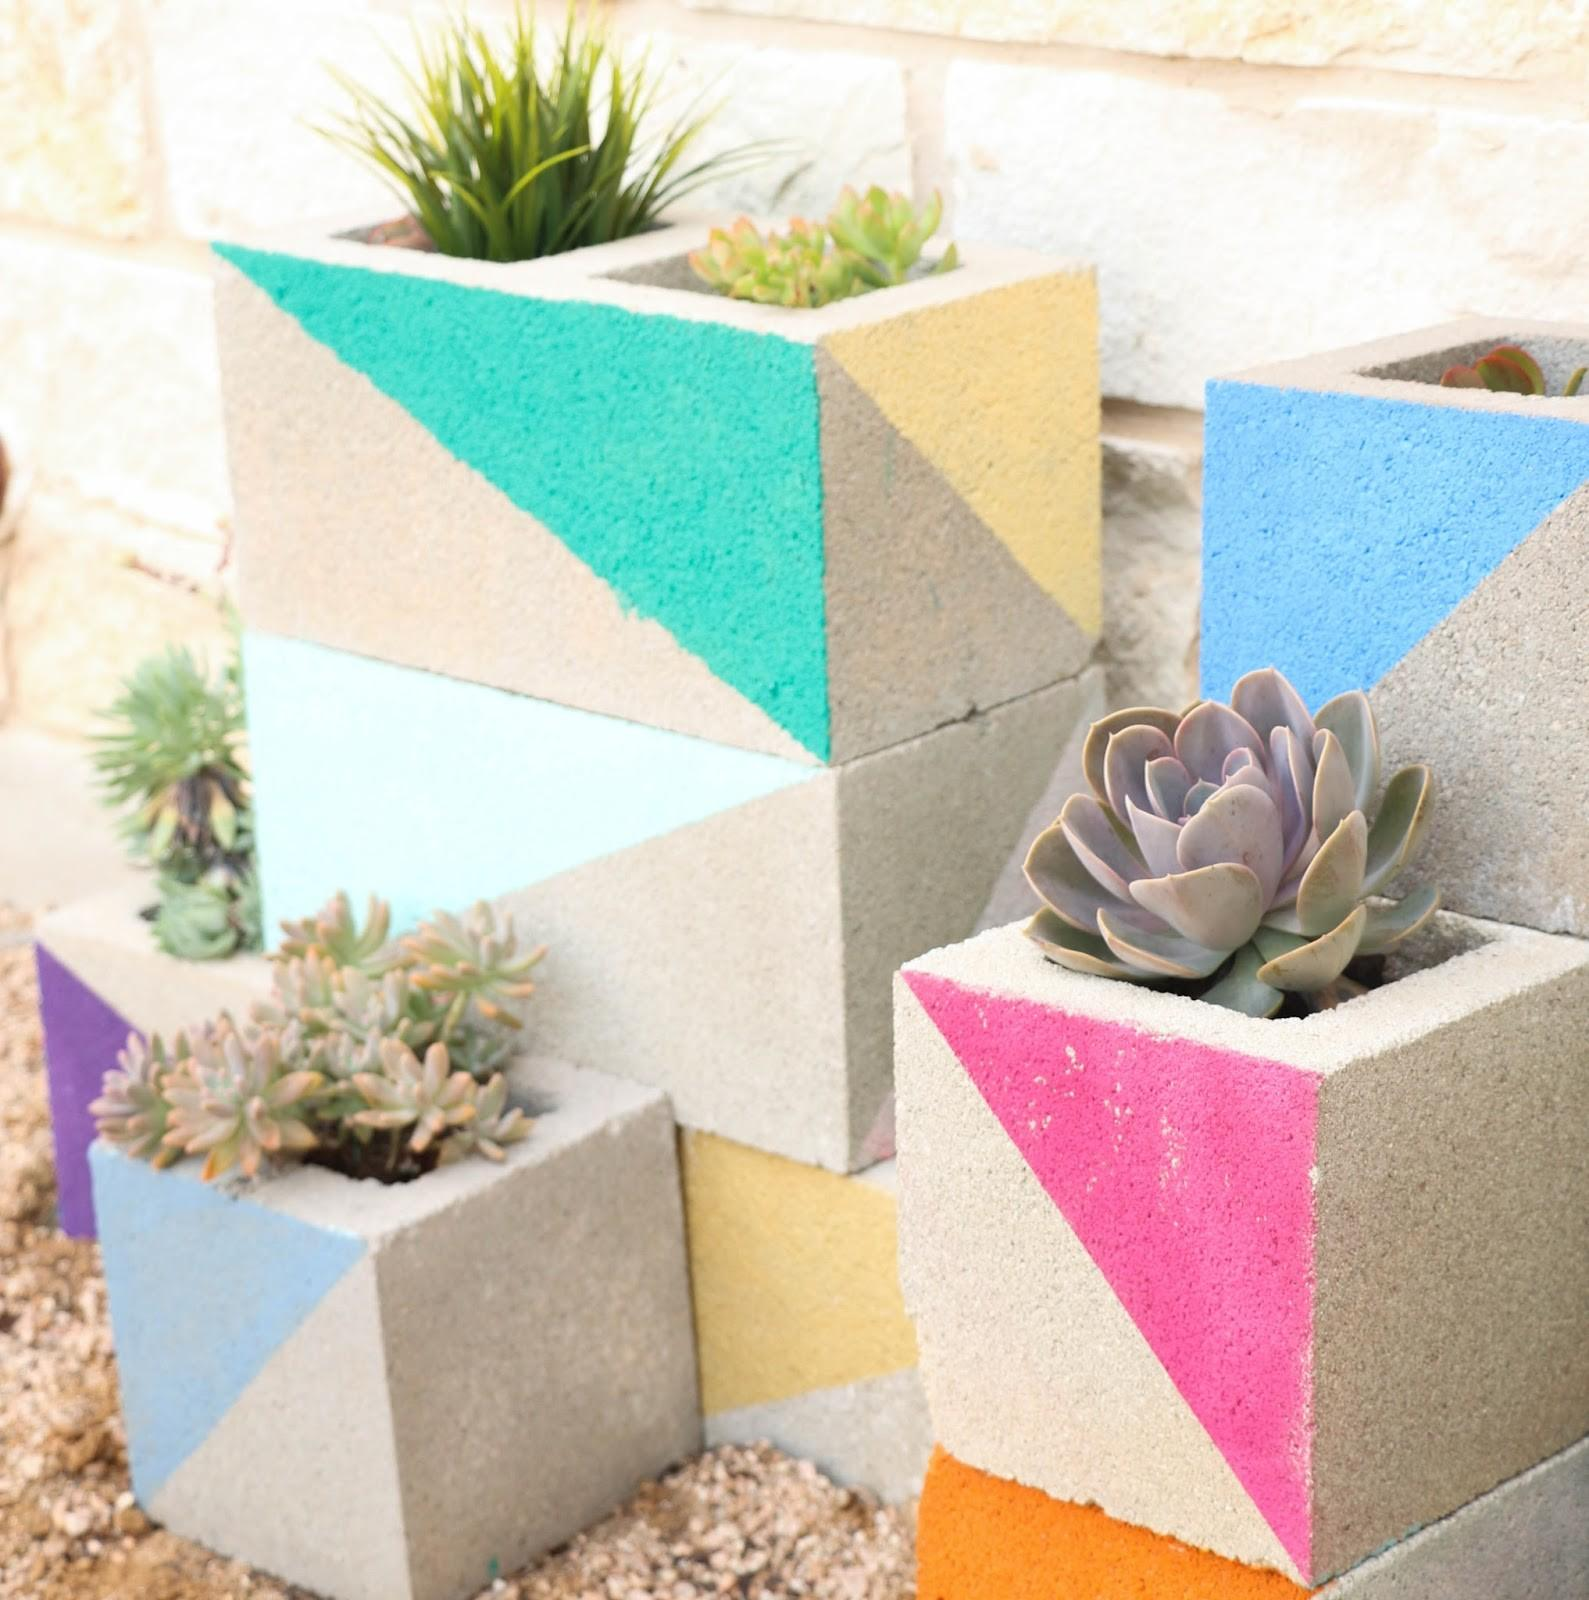 Diy Outdoor Succulent Bench Kailo Chic Life